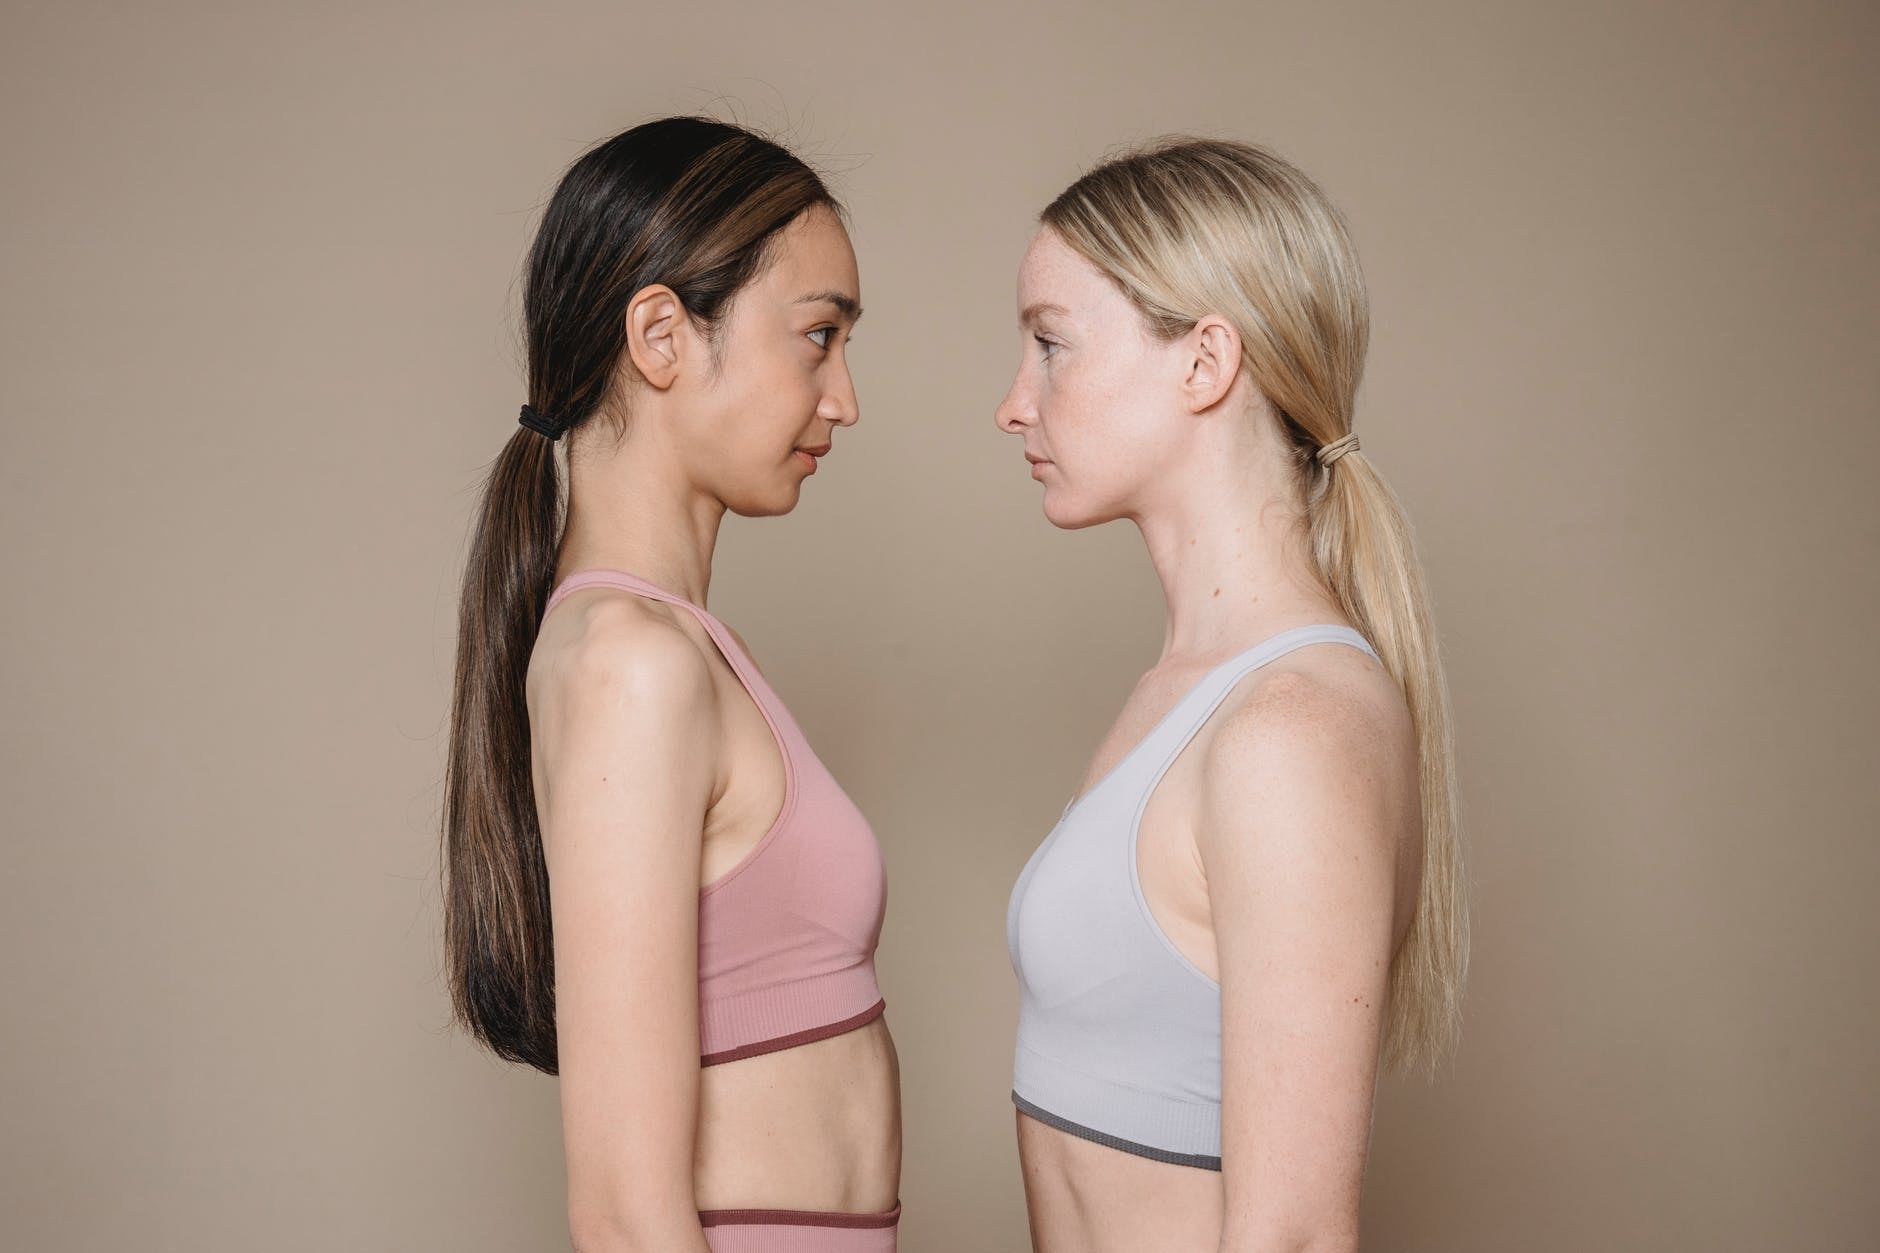 two women in sports bras looking at each other